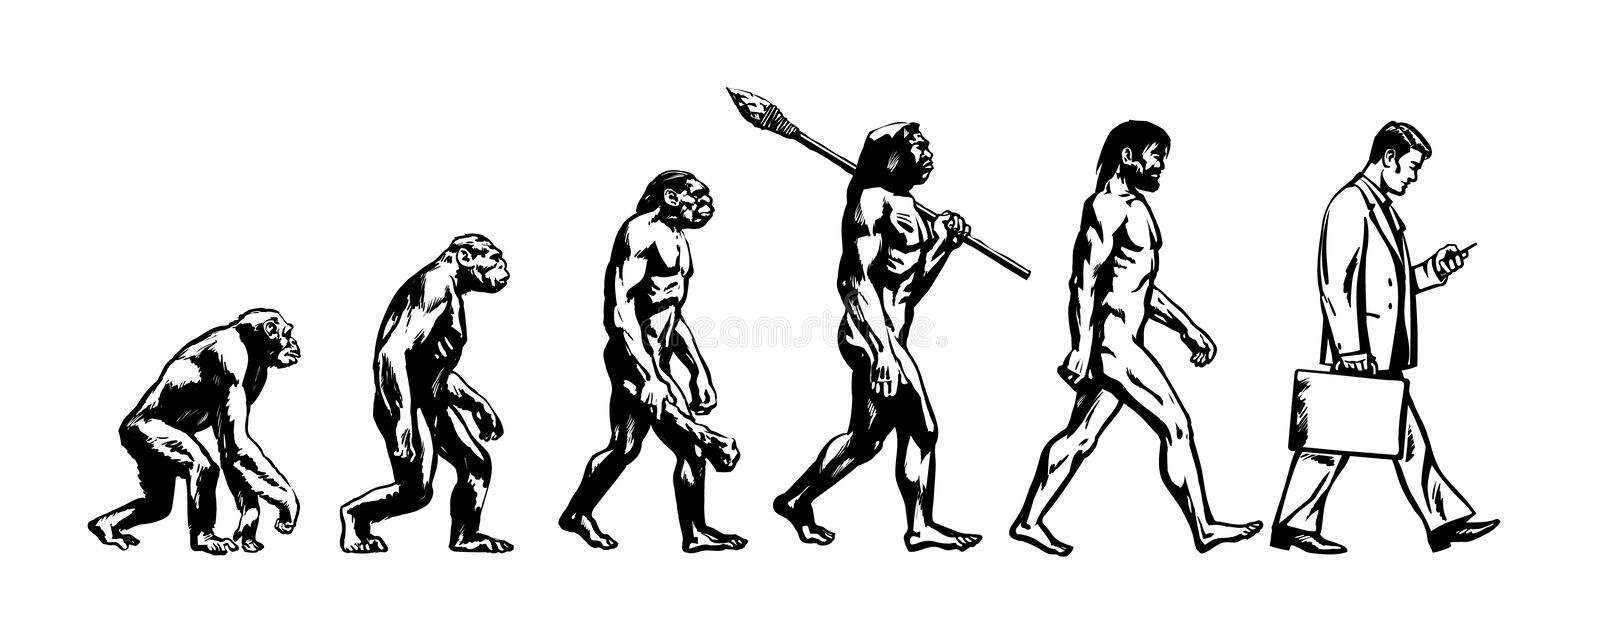 theory-evolution-man-theory-evolution-ma